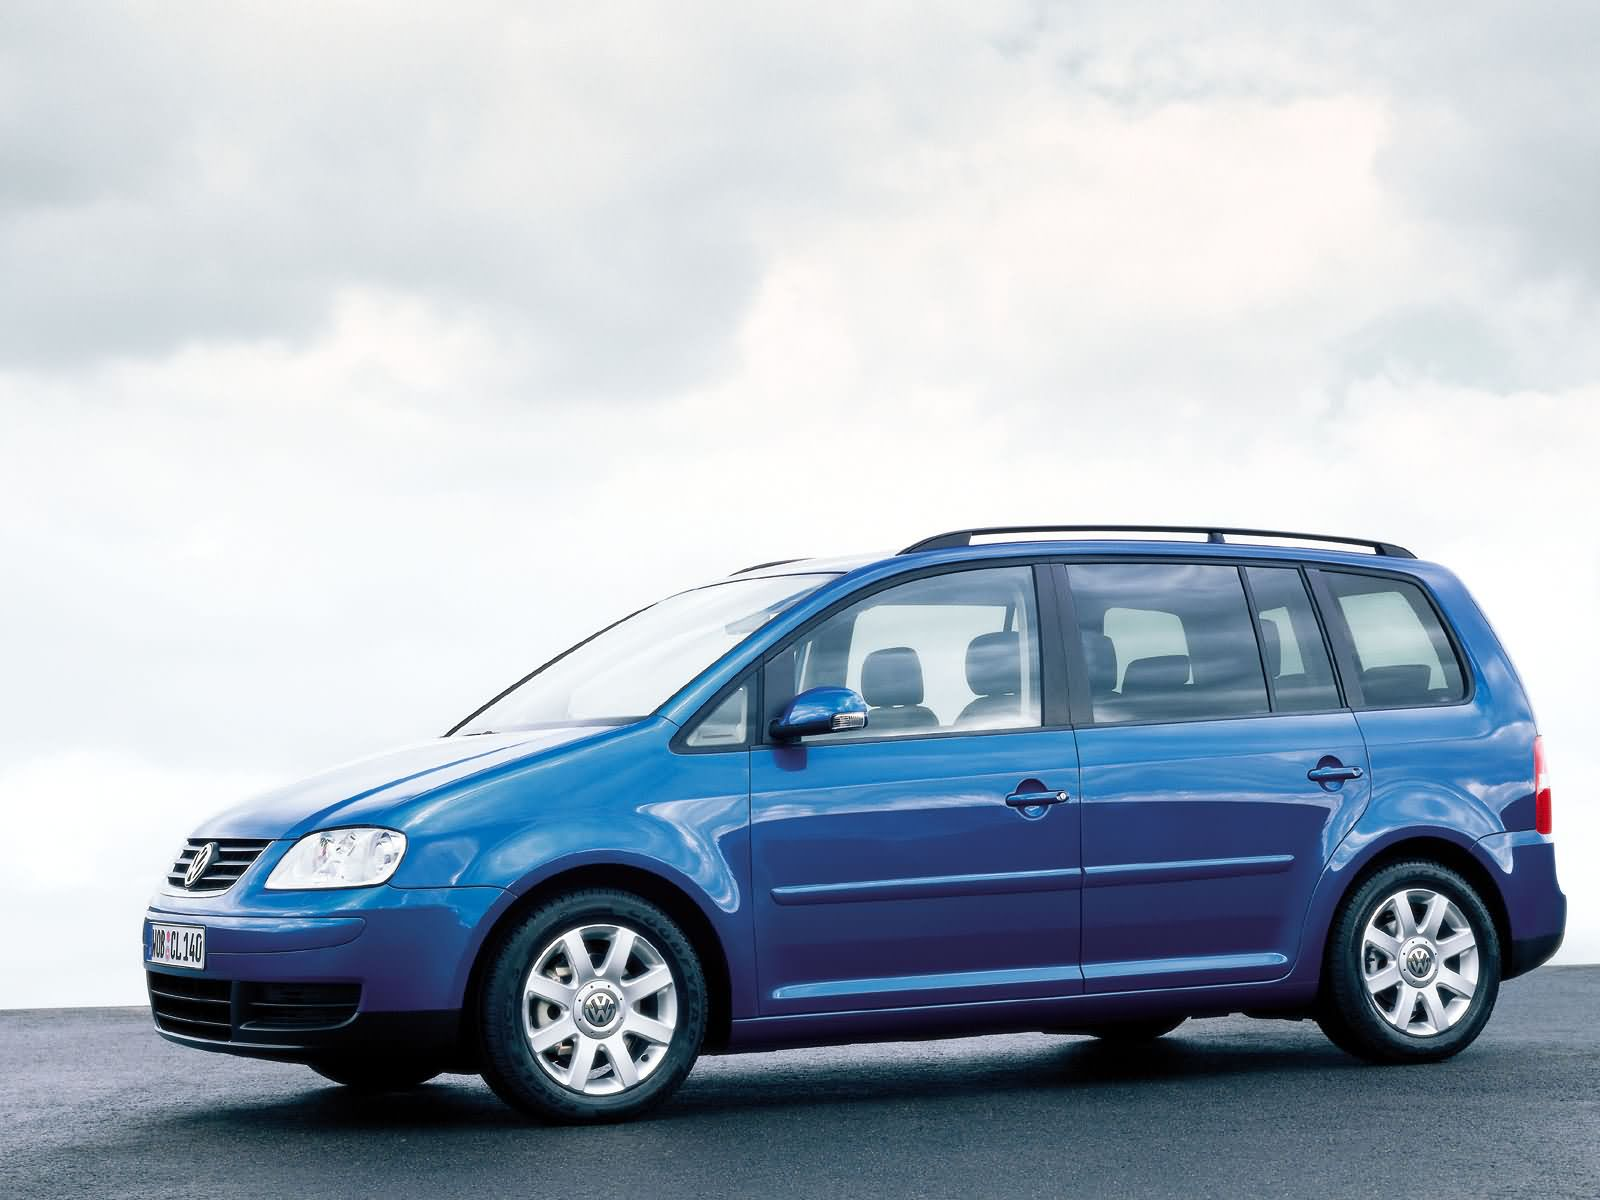 volkswagen touran photos photogallery with 71 pics. Black Bedroom Furniture Sets. Home Design Ideas